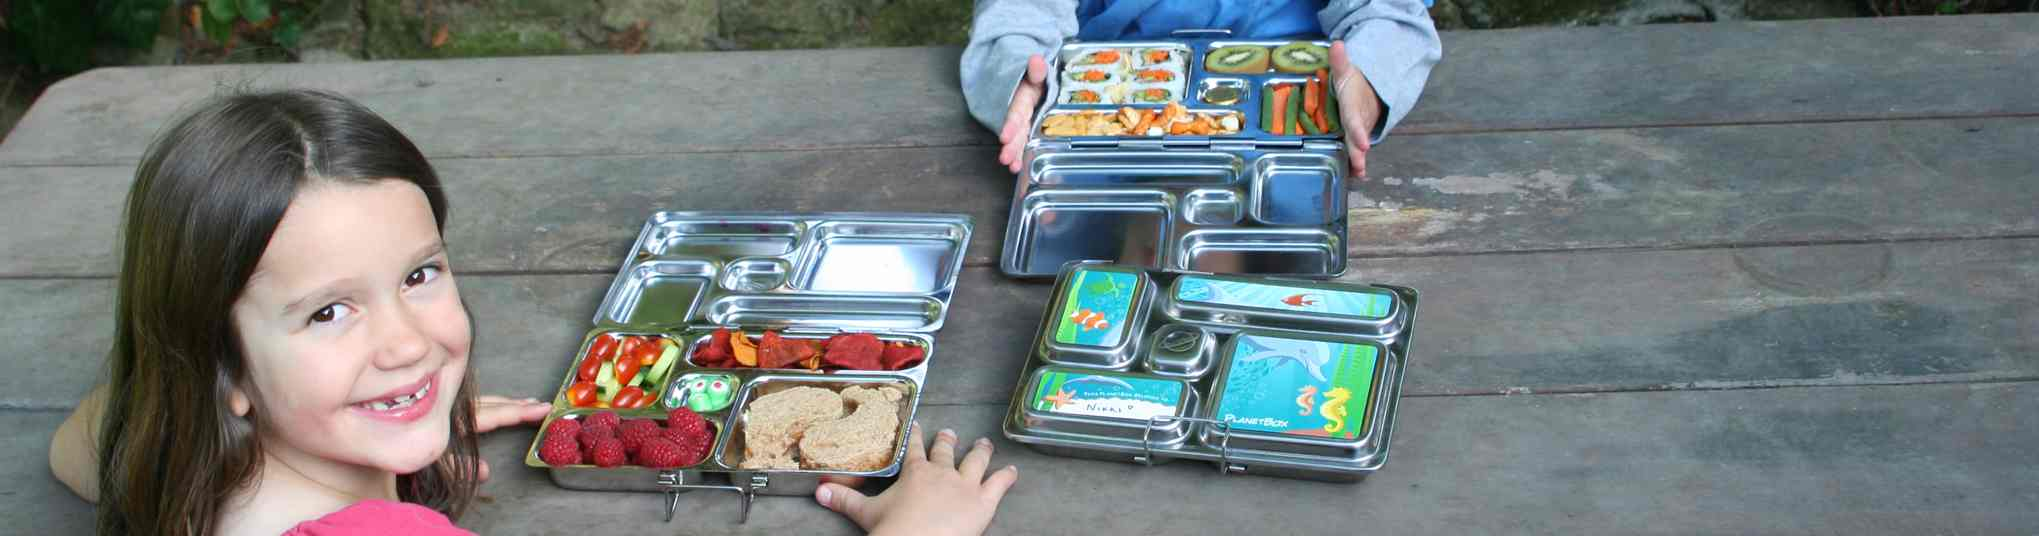 PlanetBox ultra cool lunchboxes for everyone